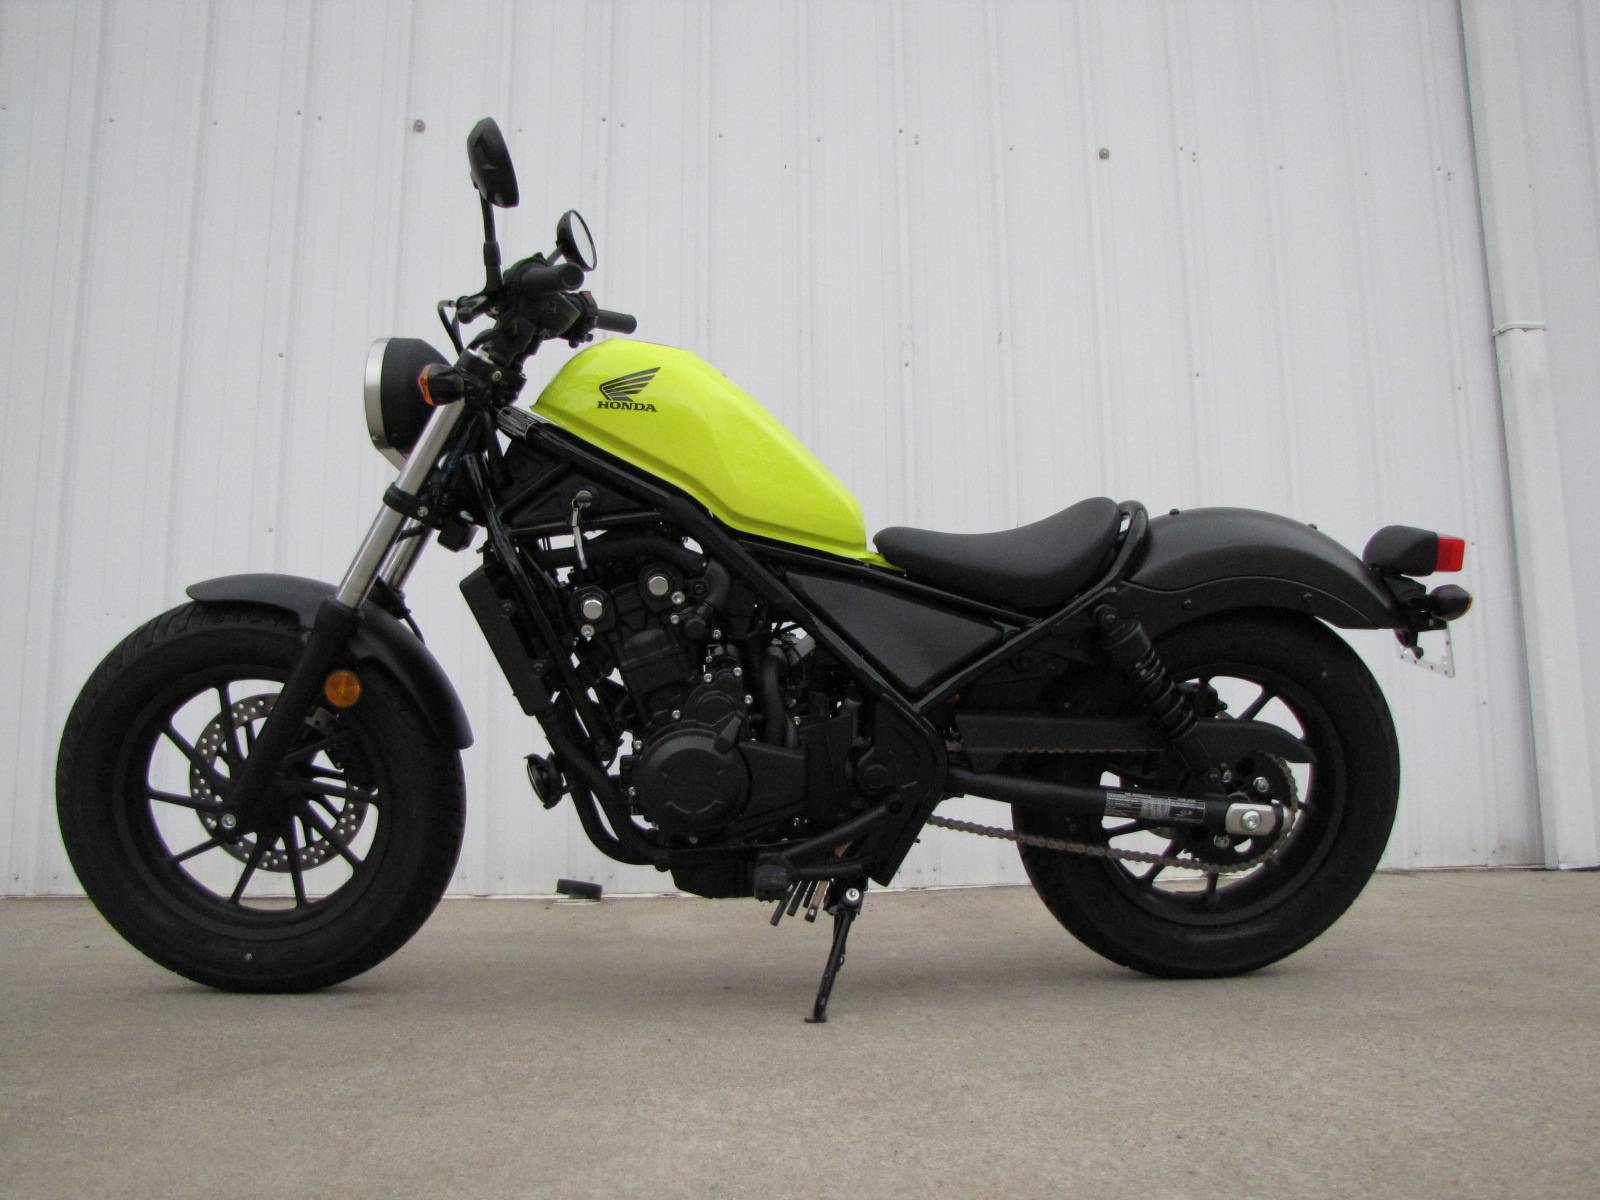 new 2017 honda rebel 500 motorcycles in ottawa, oh | stock number: n/a